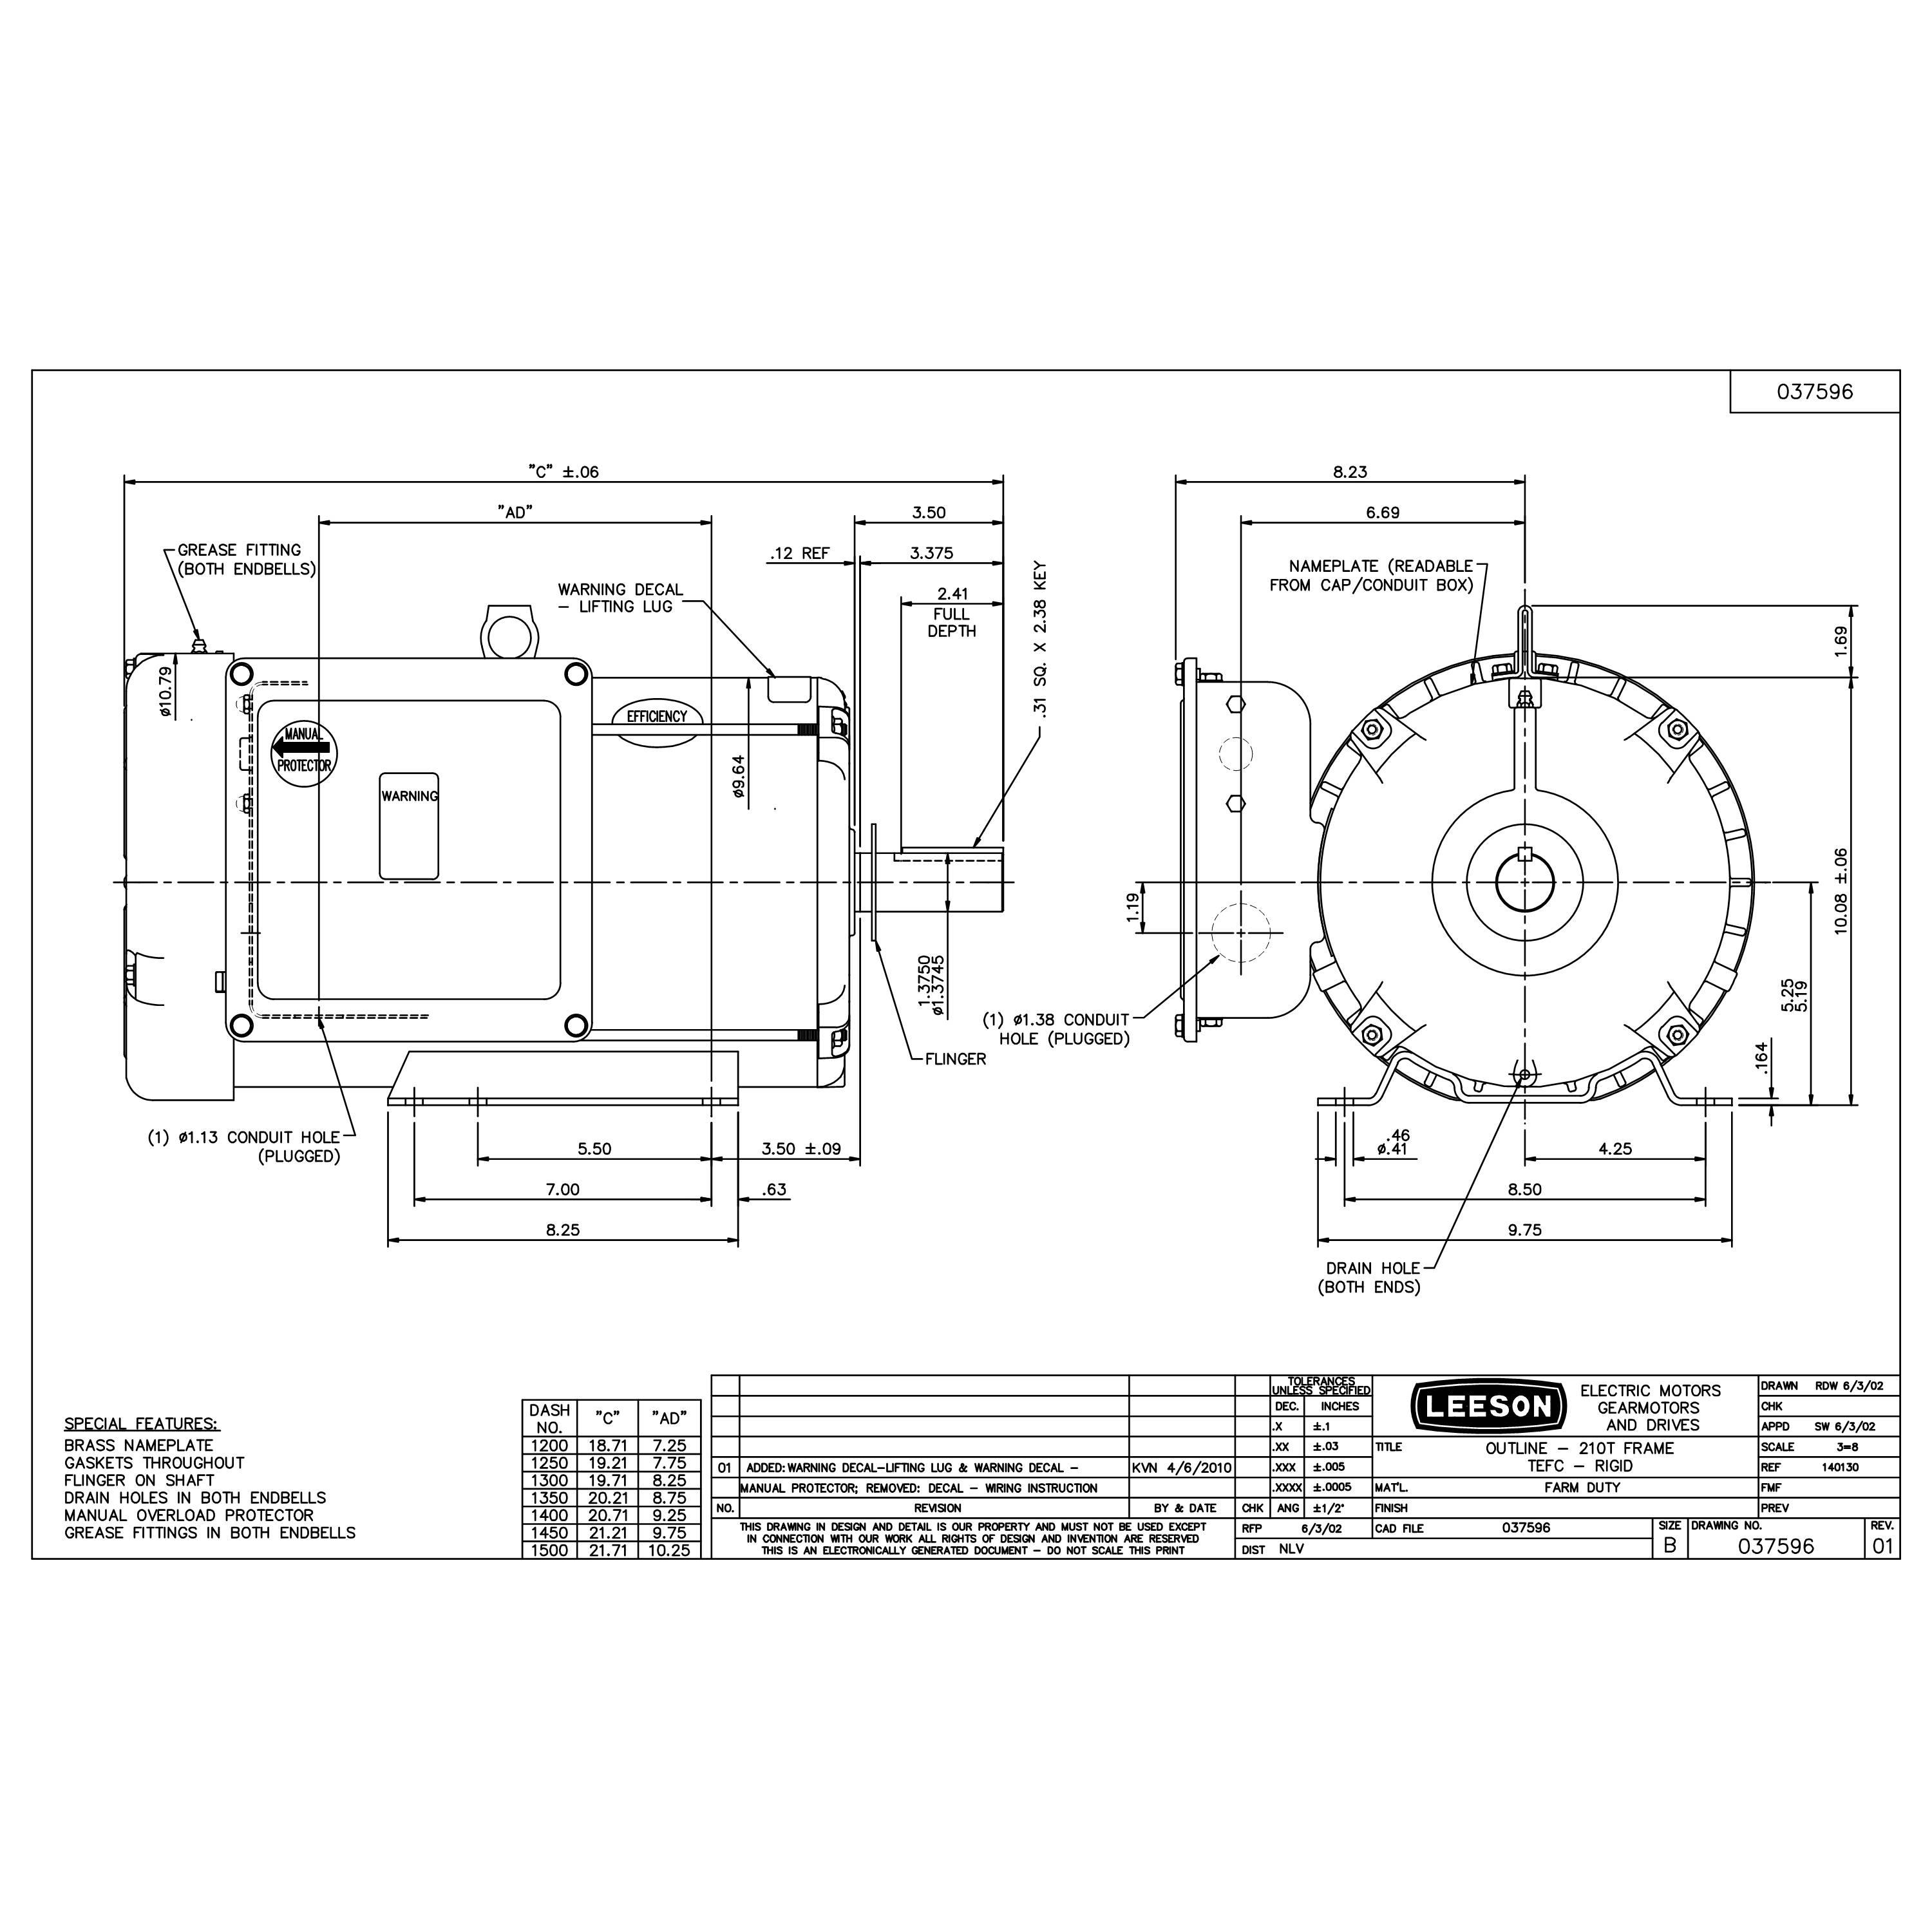 Leeson 3 Phase Motor Wiring Diagram from www.witmermotorservice.com